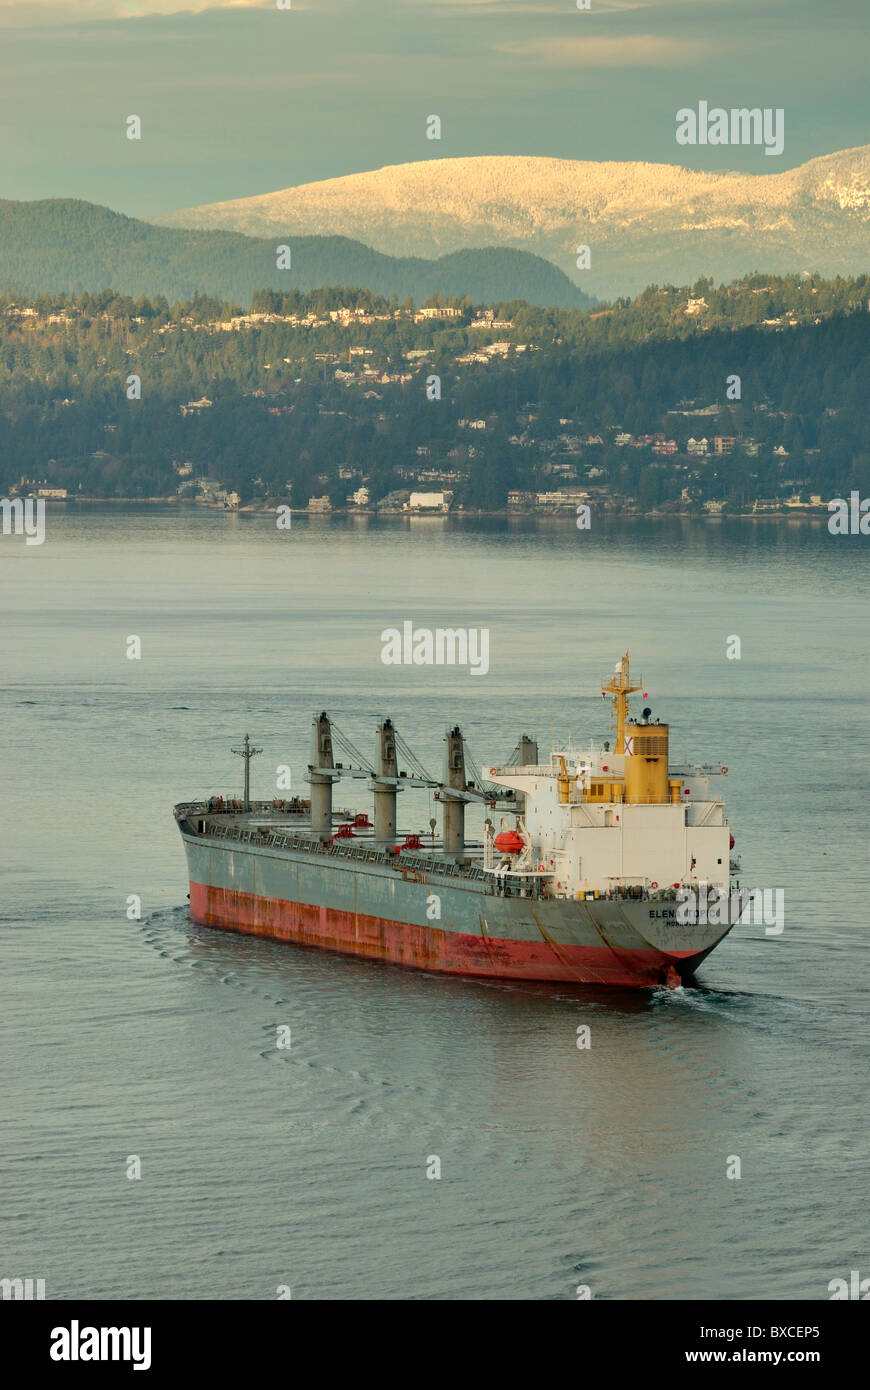 On a winter morning, Cargo Freighter Elena Topic departing Vancouver Harbor with West Vancouver in the background. - Stock Image